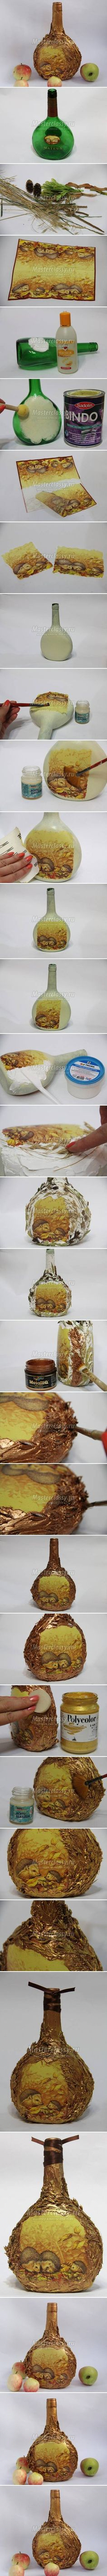 DIY Autumn Bottle Decoupage